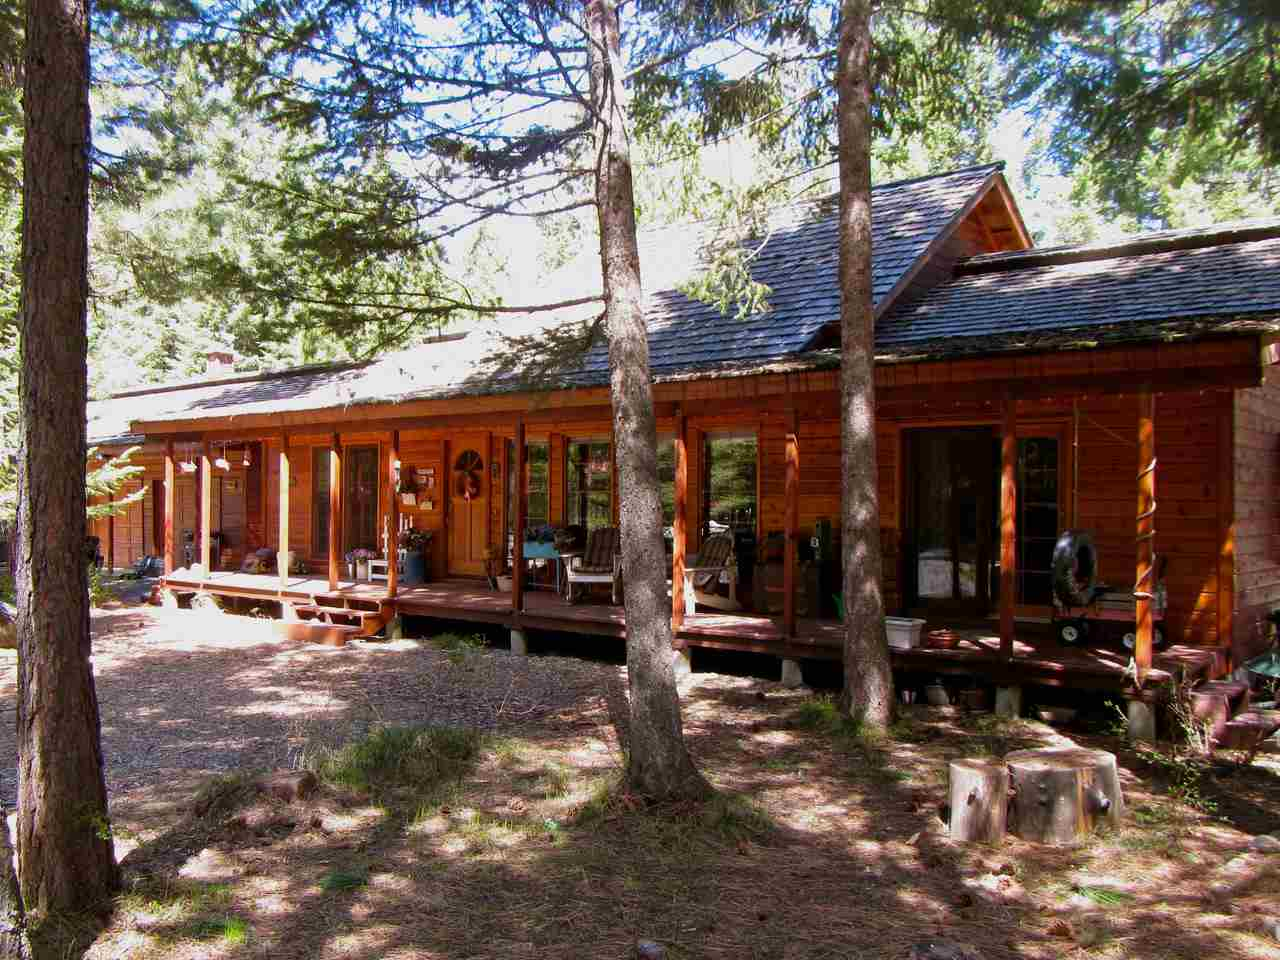 907 Lick Creek Road, Mccall, ID 83638